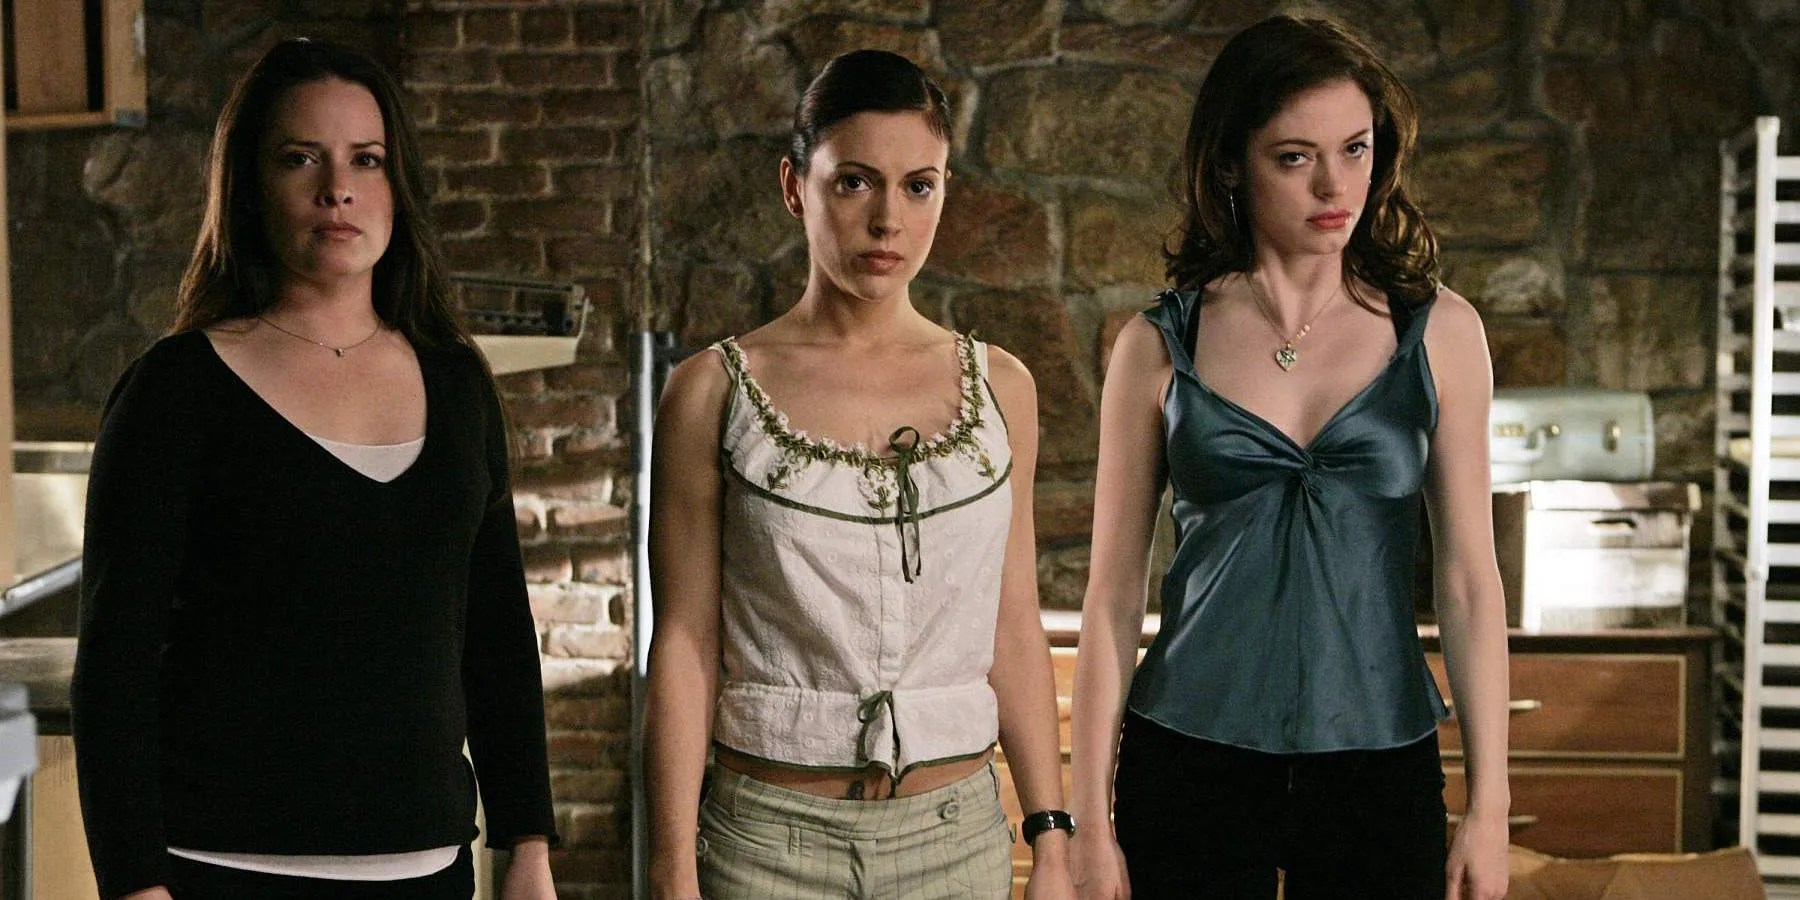 Gilmore Girls A Year In The Life Wallpaper Charmed Reboot Will Not Connect To Original Series